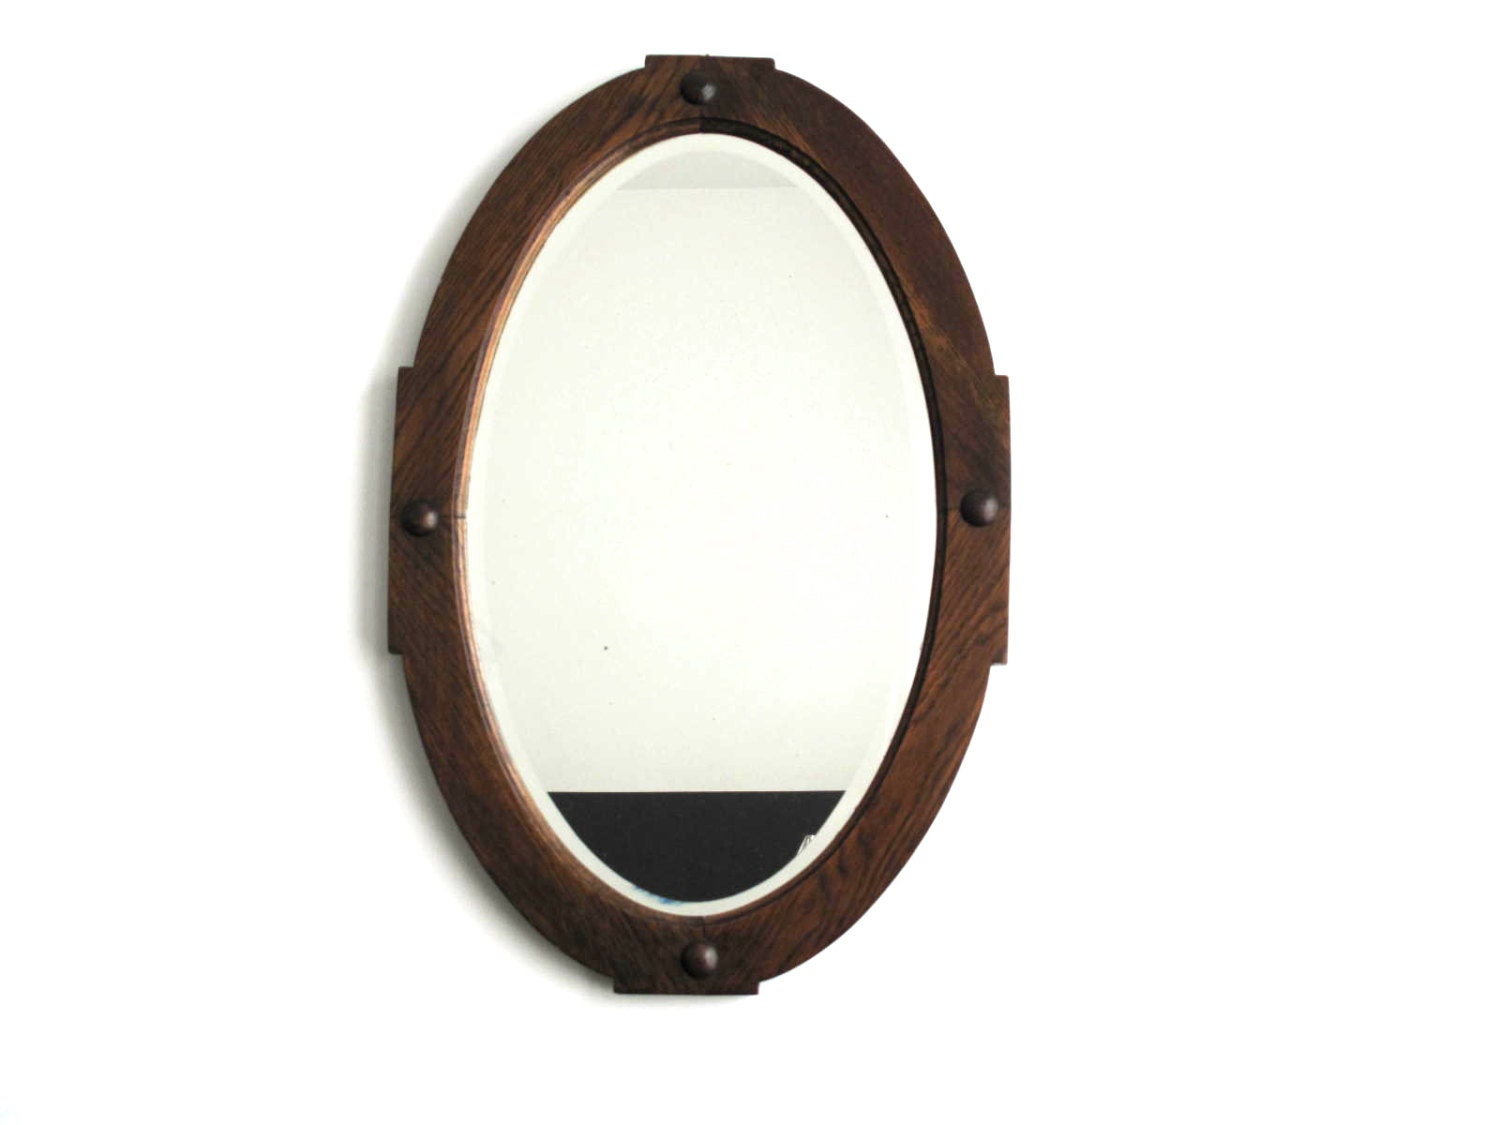 Antique Wood Framed Oval Wall Mirror Vintage By Snapshotvintage